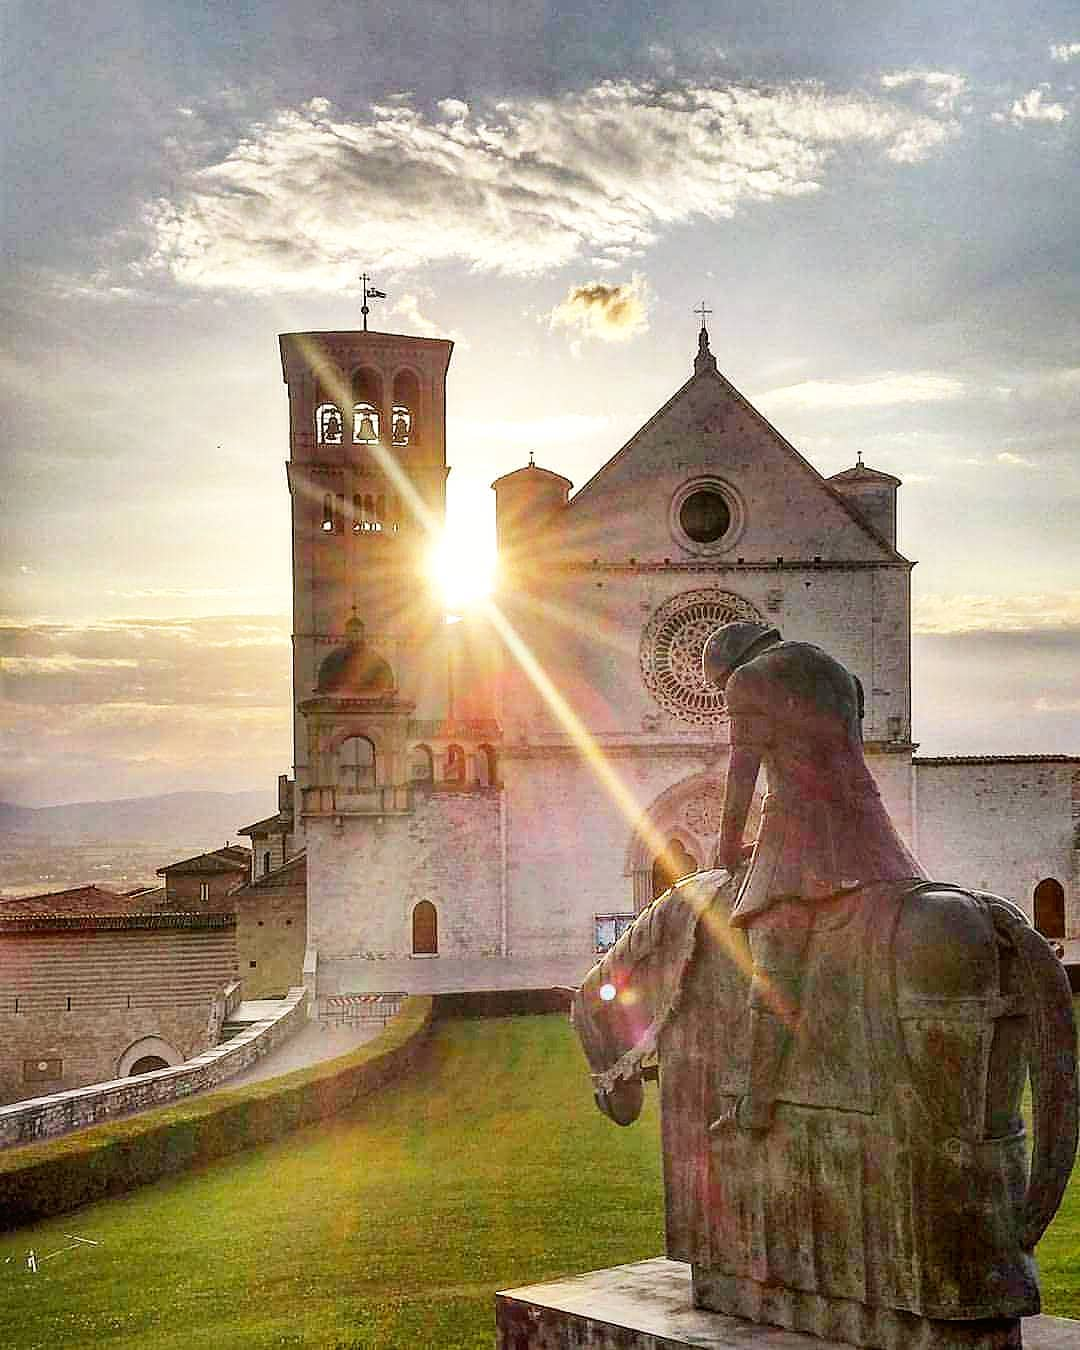 [...] Upon that side, Where it doth break its steepness most, arose A sun upon the world  An excerpt of the shining description of St. Francis of Assisi made by #DanteAlighieri in The Divine Comedy (Paradise, Canto XI)  #Italycomestoyou #DanteDay  📷 IG orazioparisi20 https://t.co/z3gE9oY2Lk